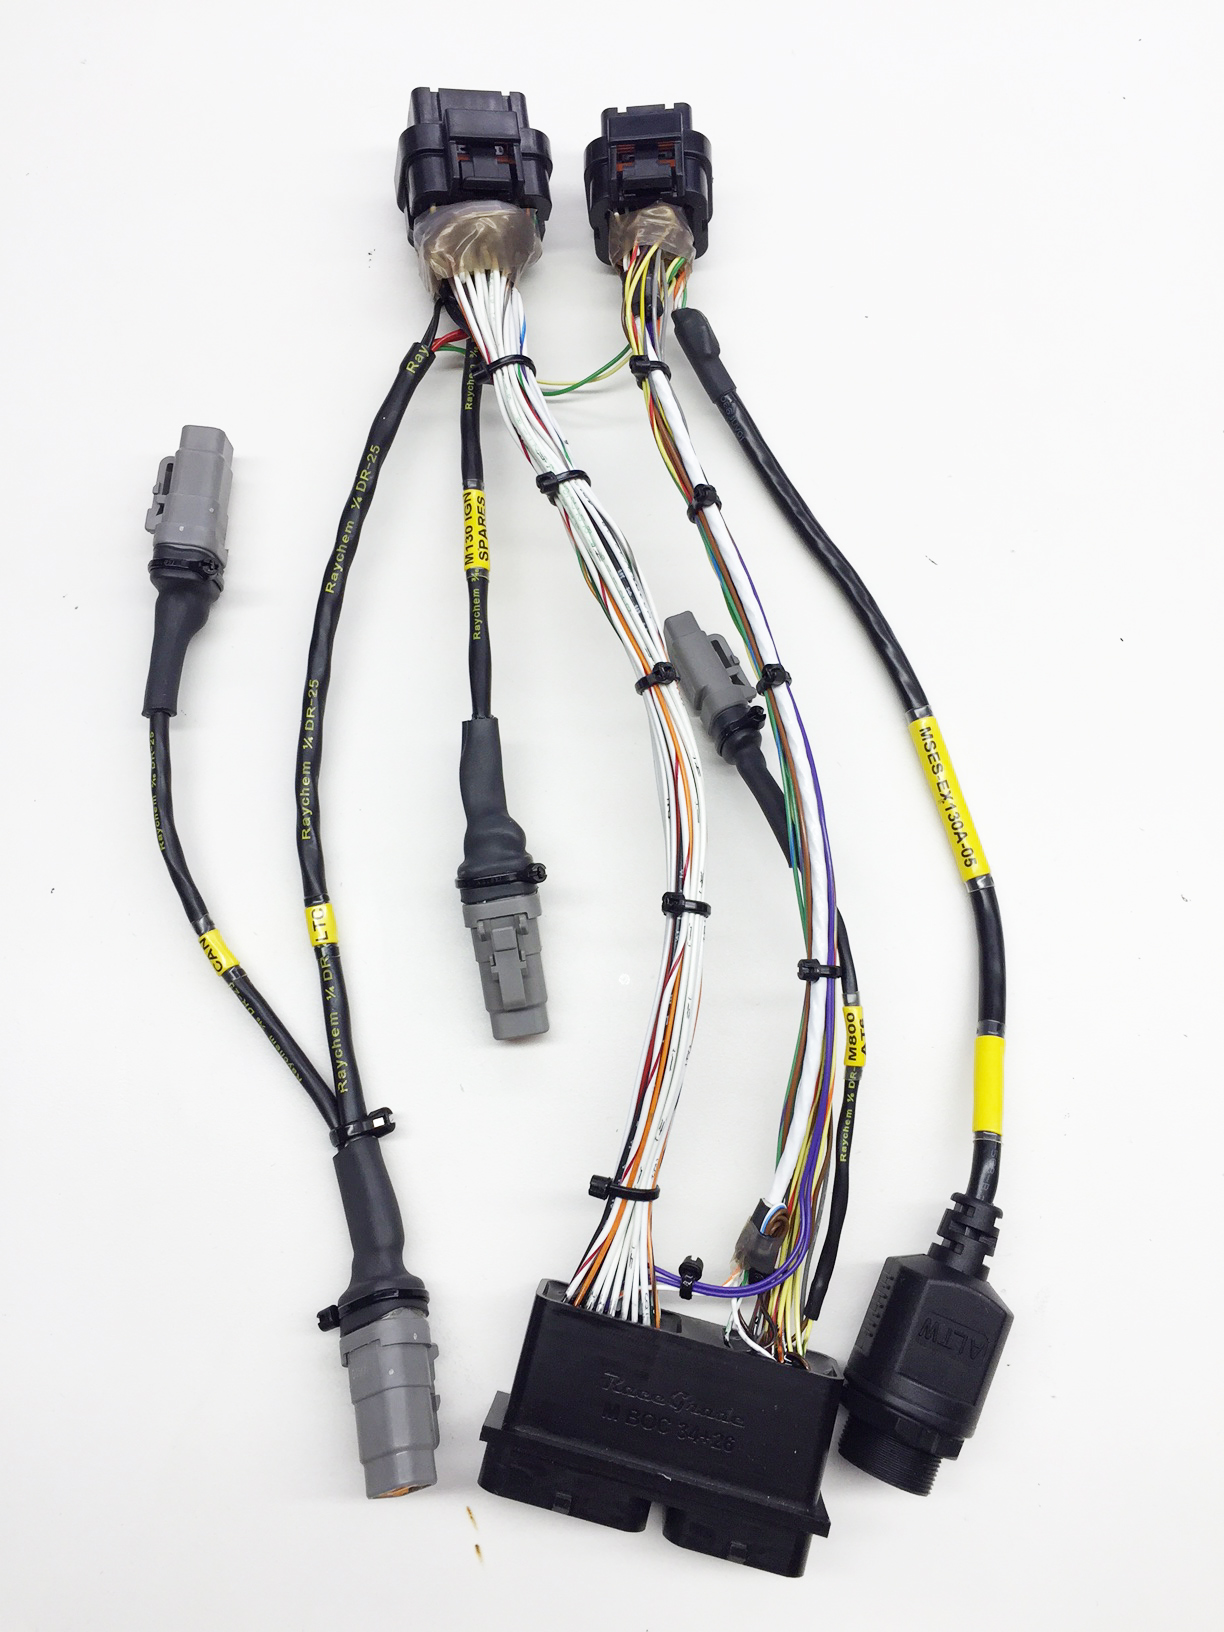 hight resolution of m800 to m130 harness adapter